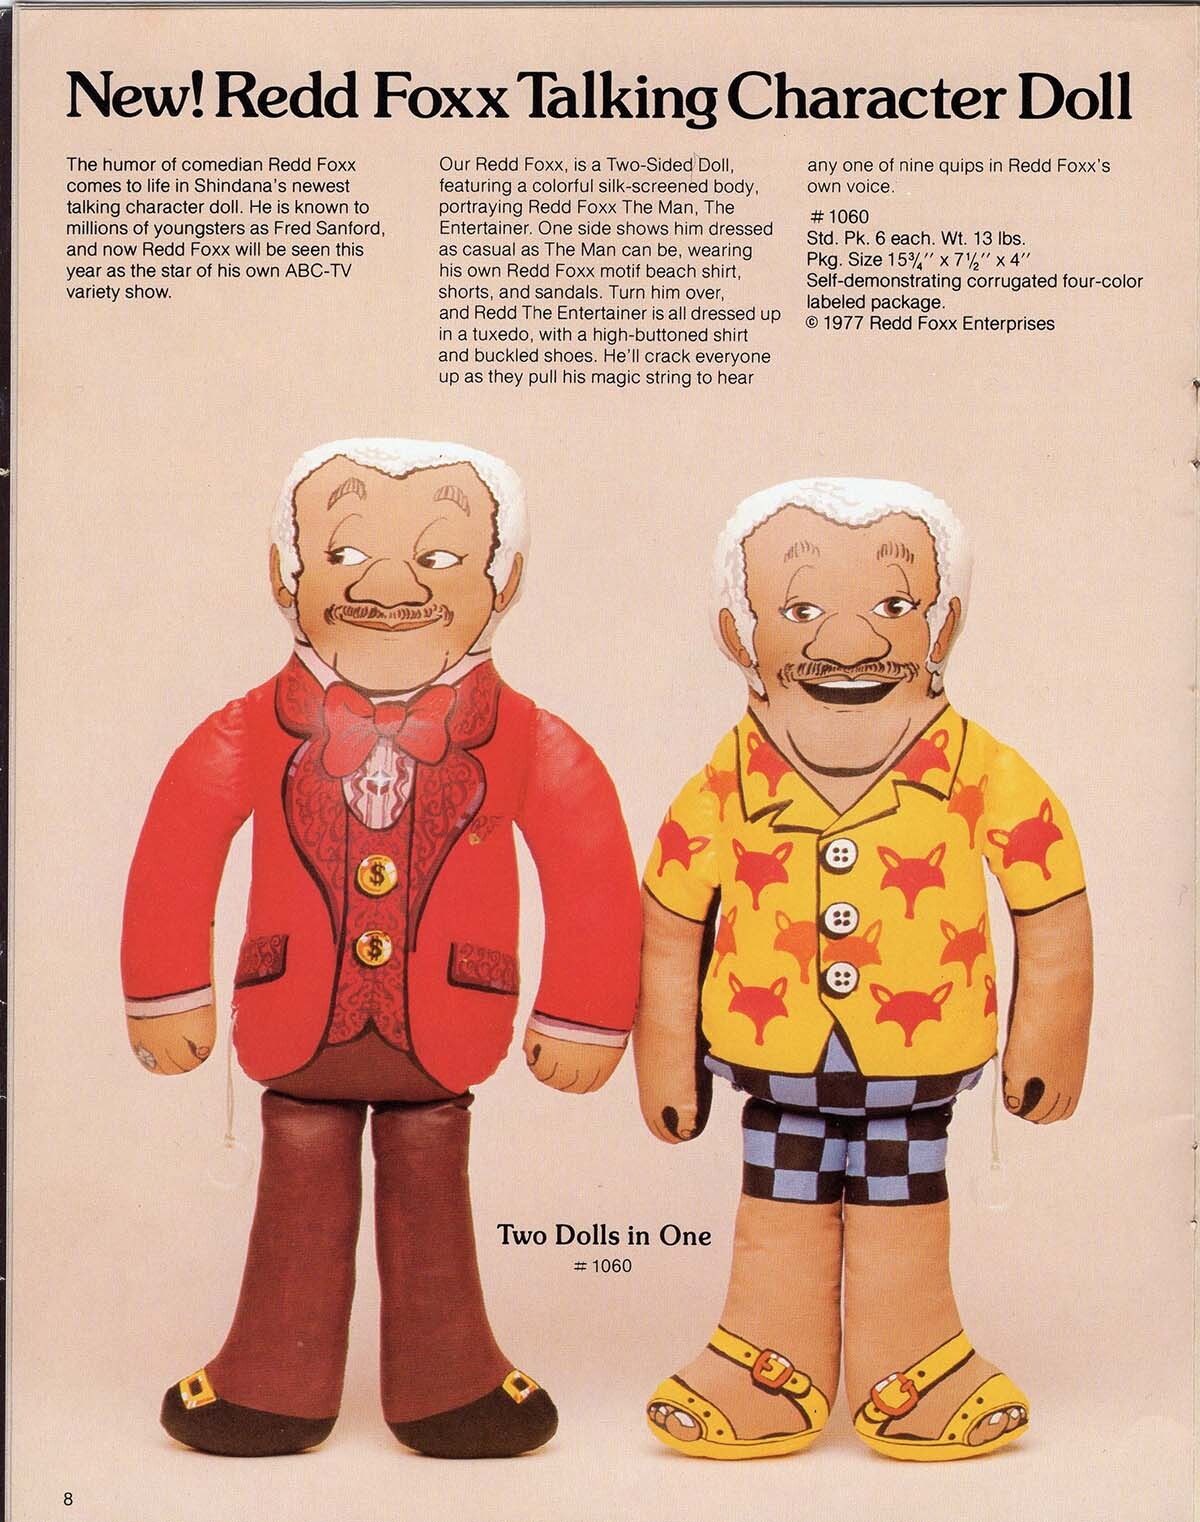 The Redd Foxx Talking Character Doll was modeled after Fred Sanford   Courtesy of Billie Green